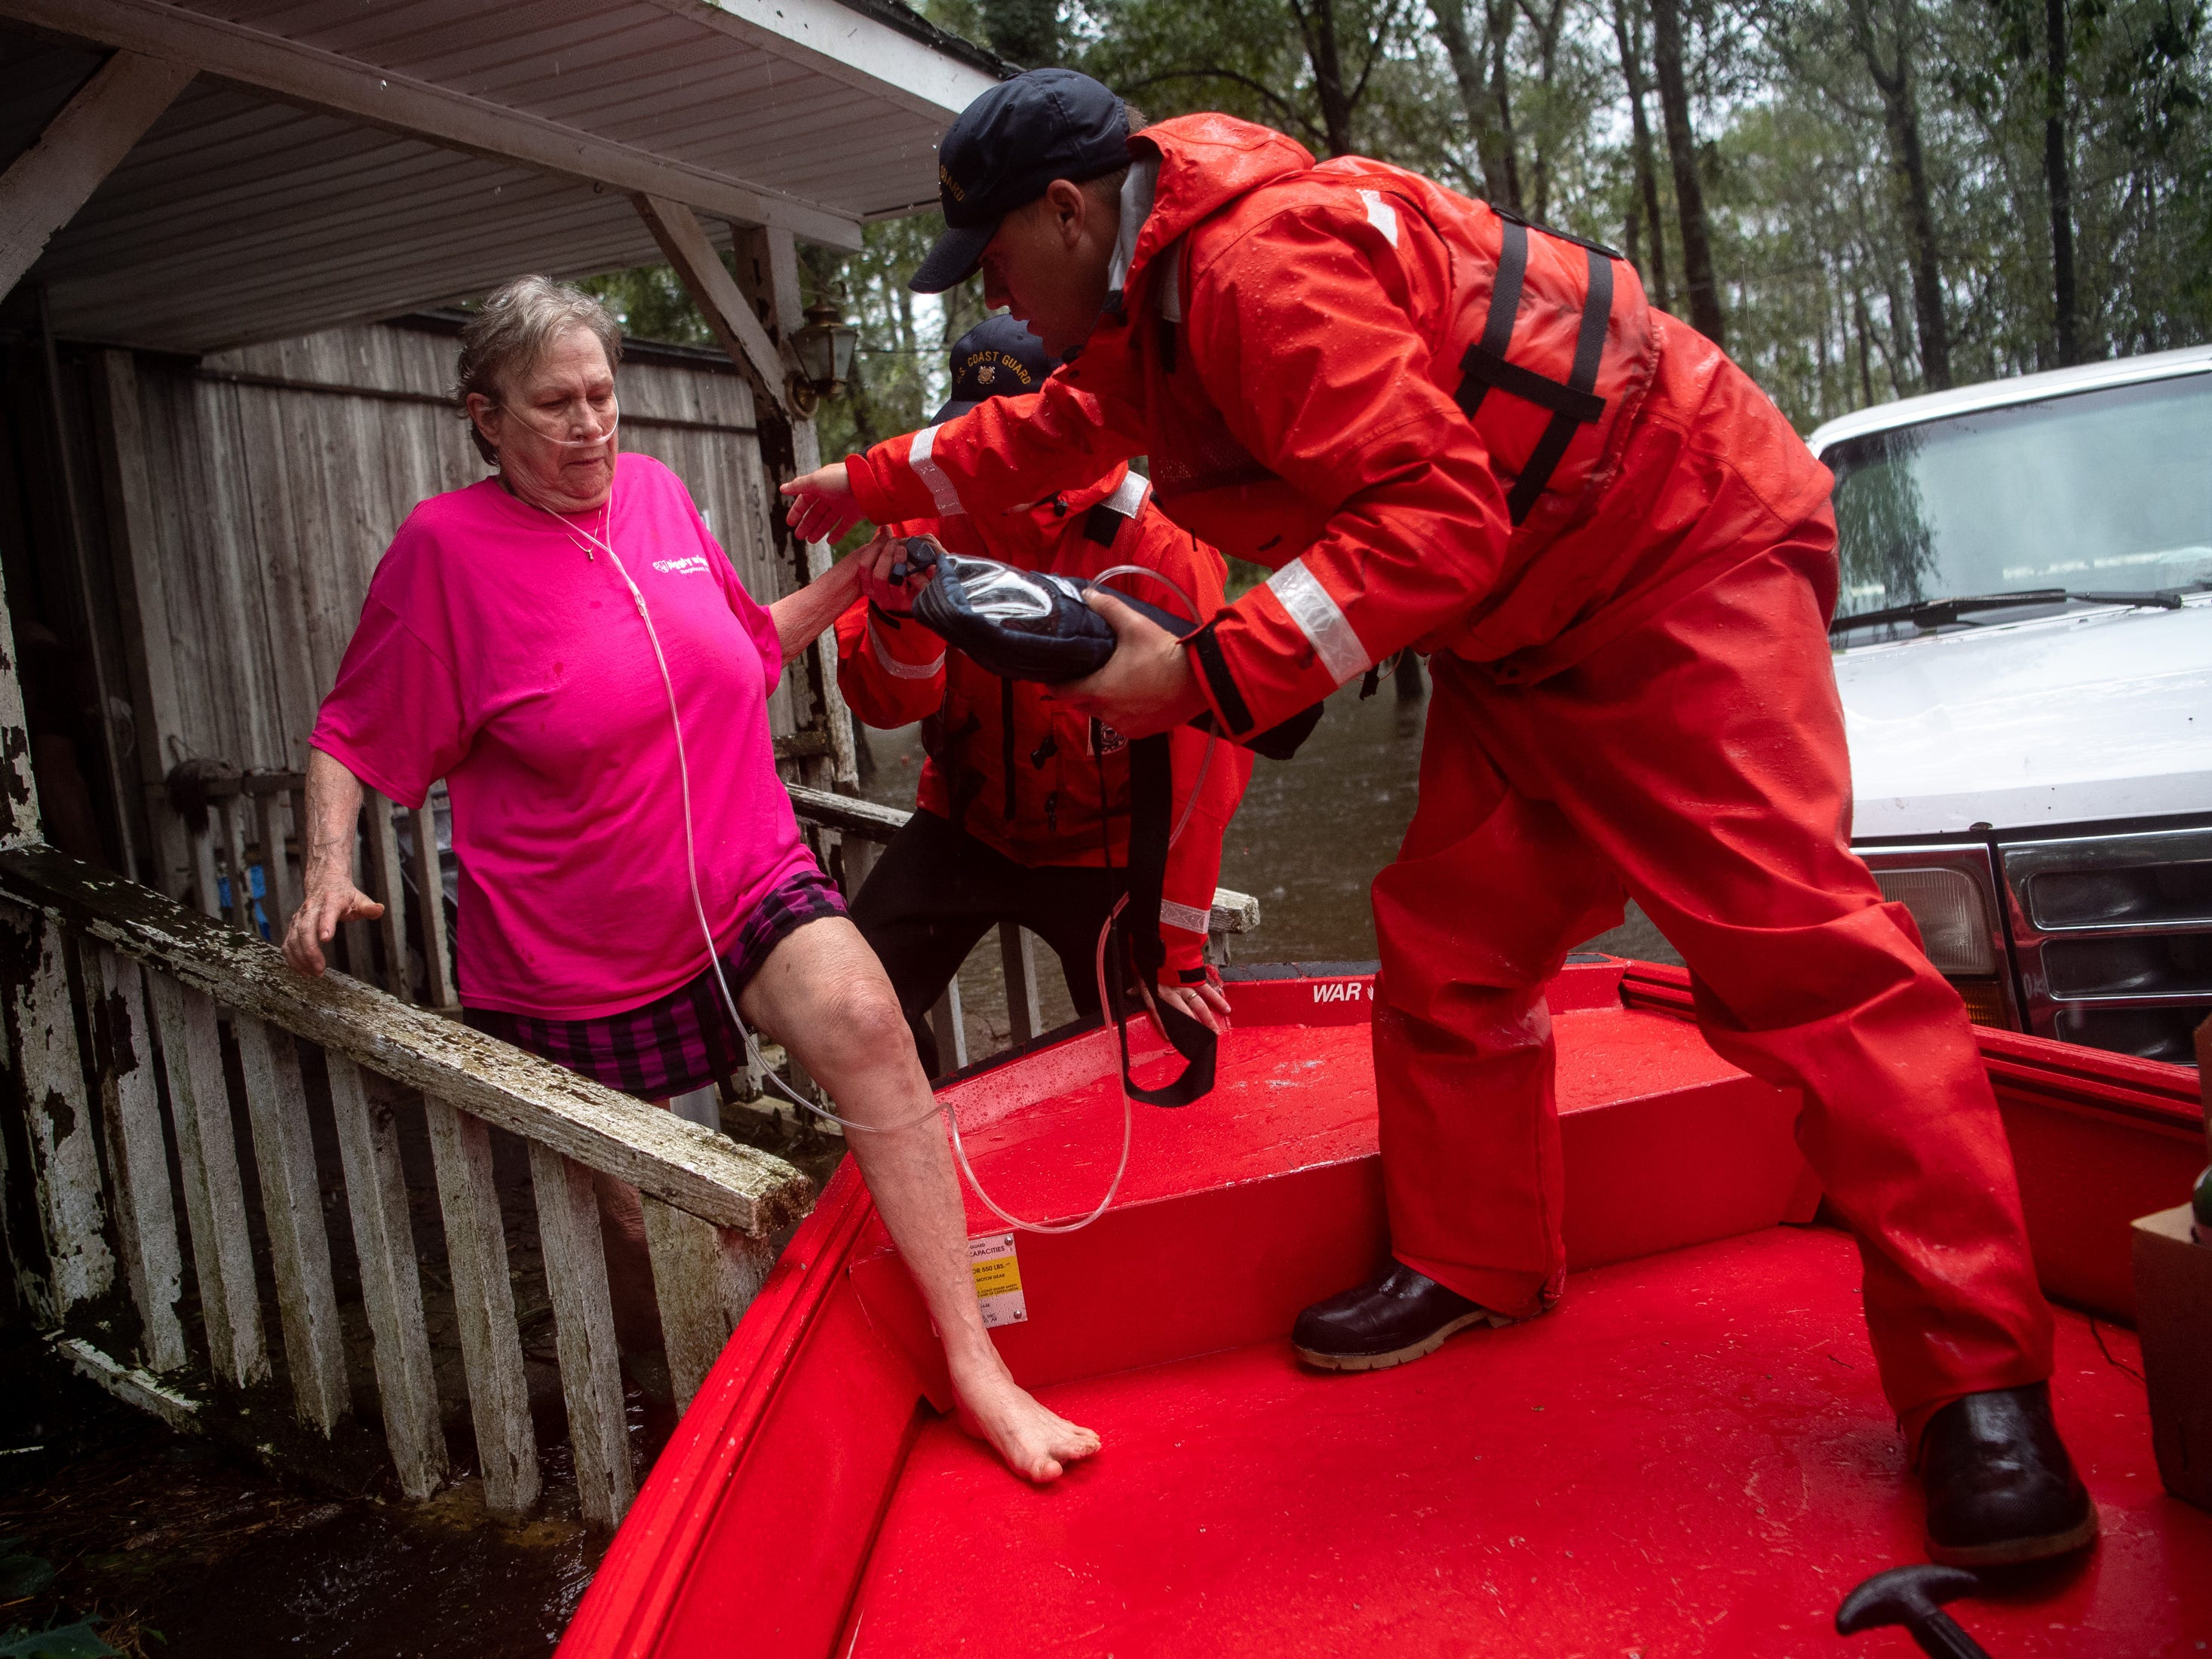 Coast Guard ME2 Blake Gwinn helps Josephine Horne, left, evacuate from her flooded home in Columbus County, N.C., Sunday, Sept. 16, 2018.